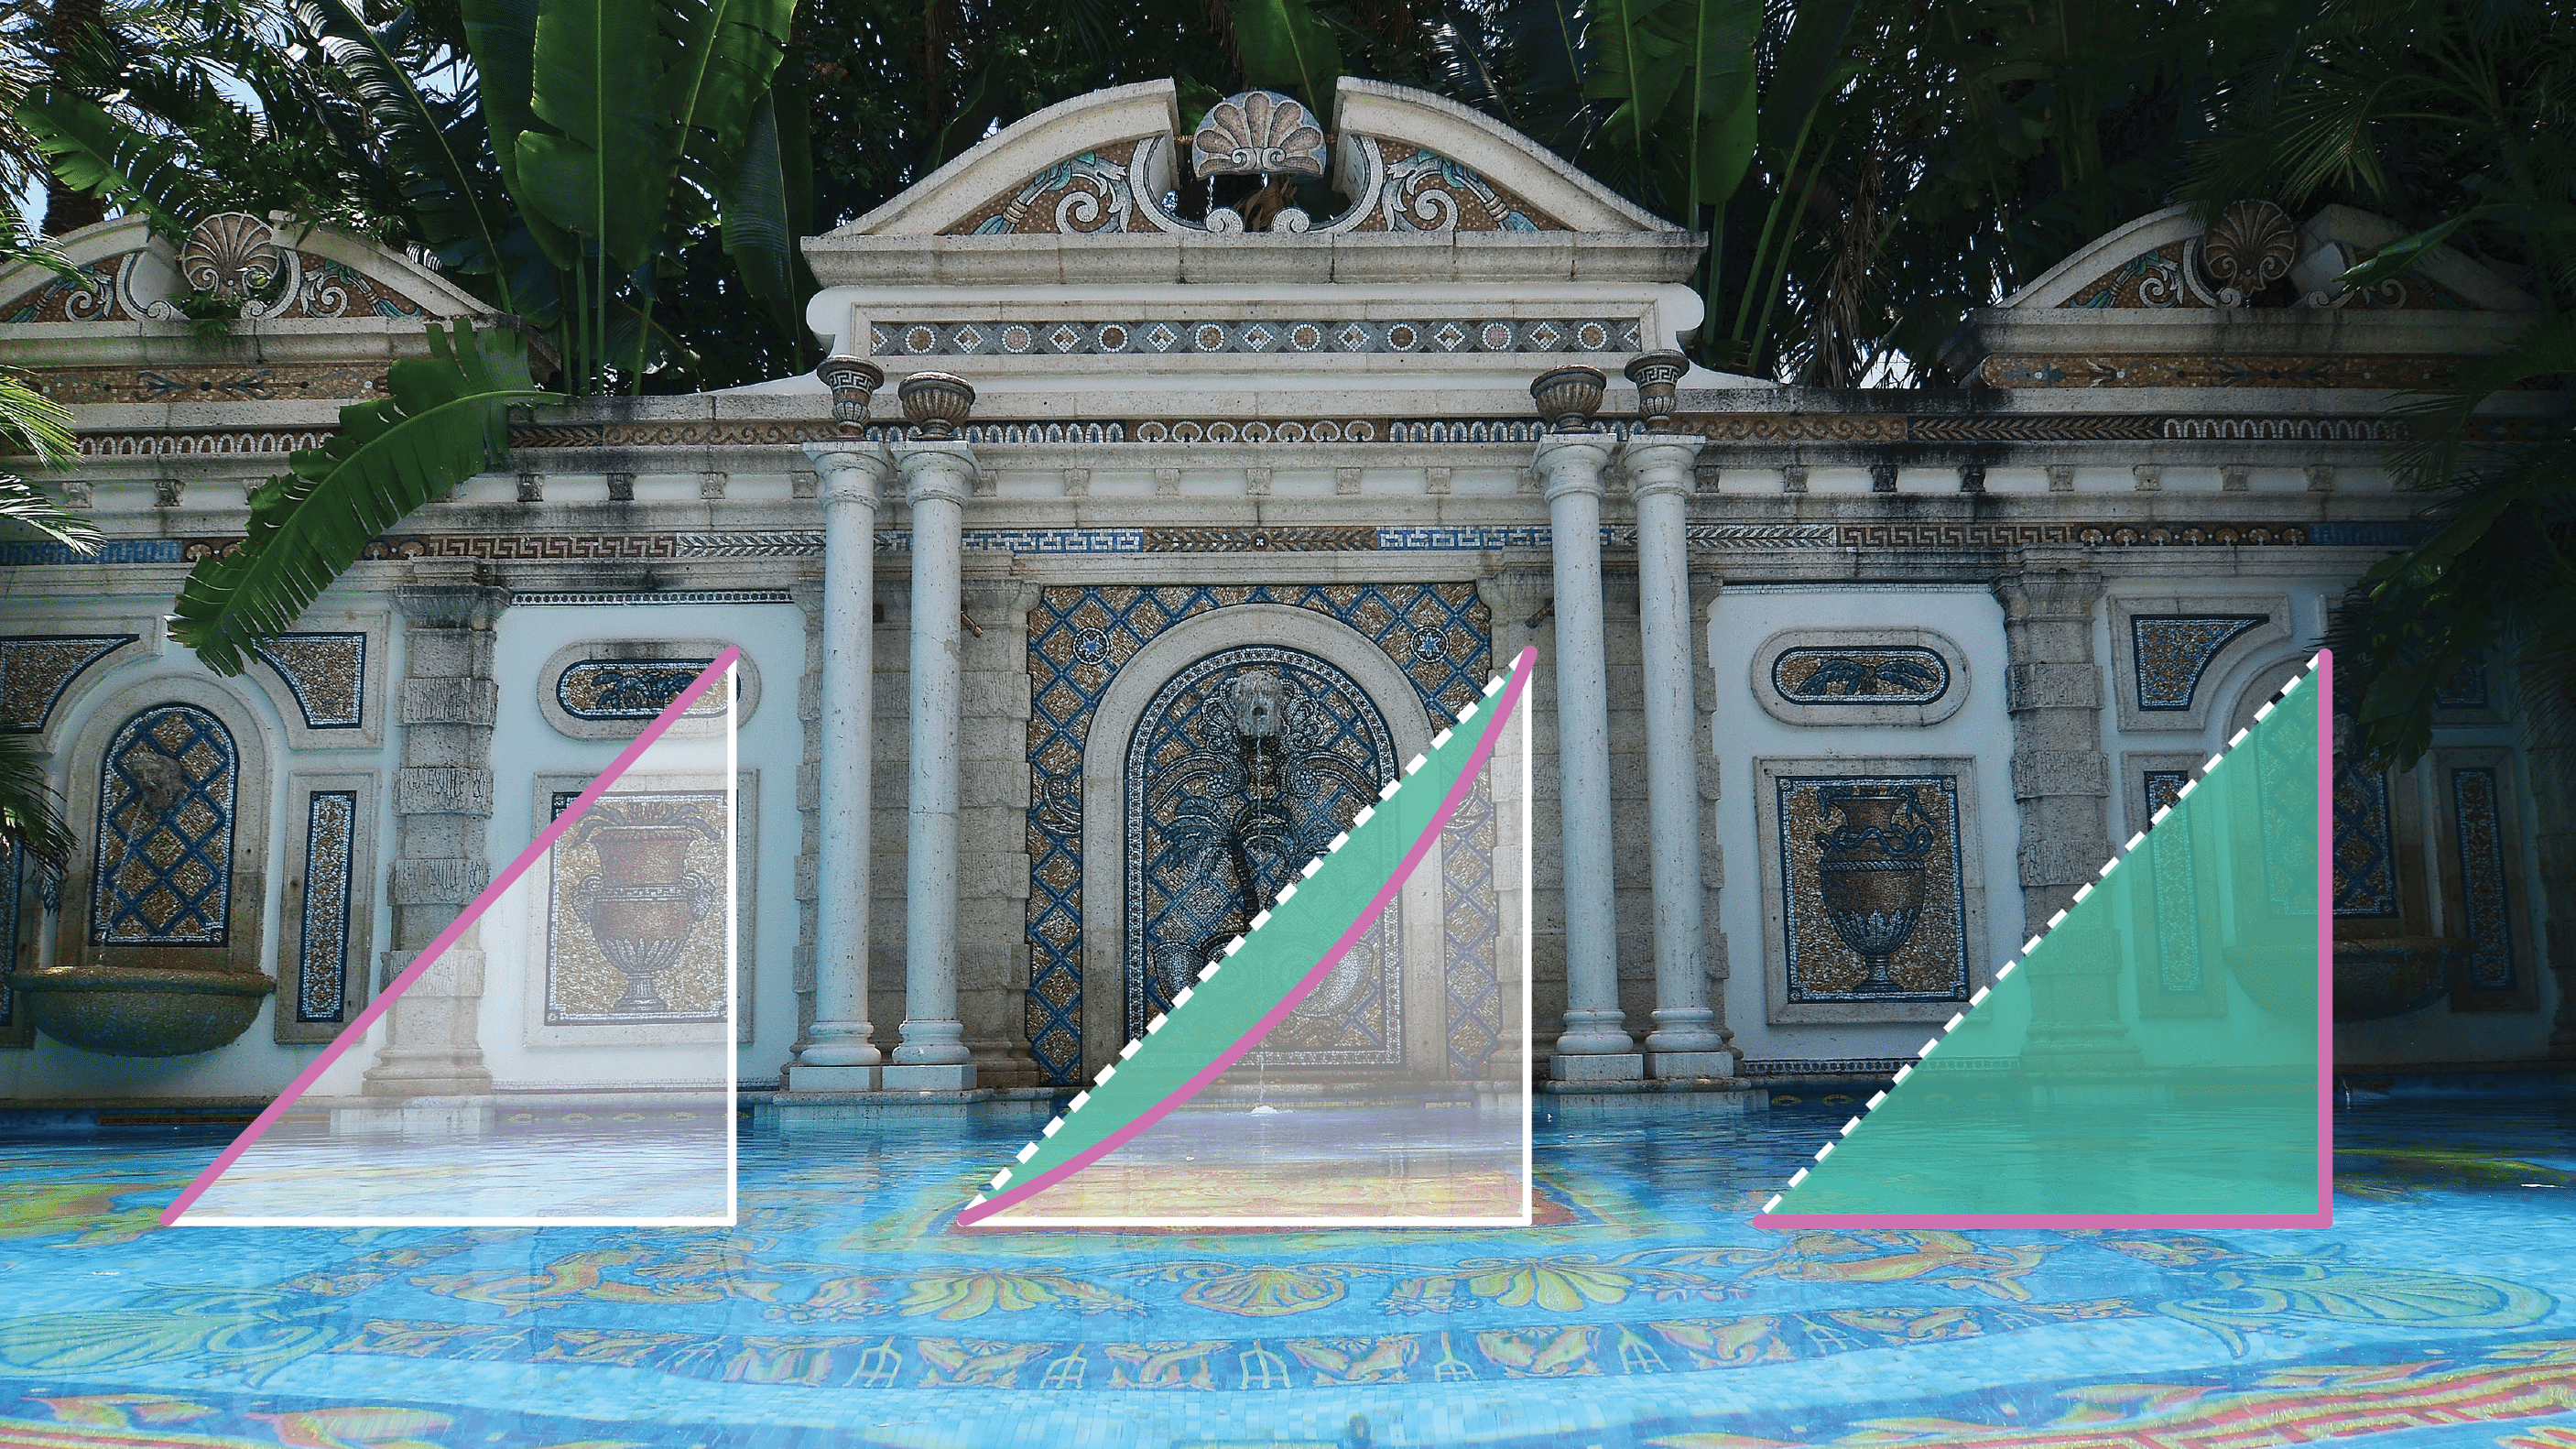 A photograph of a fancy swimming pool with illustrations of the Lorenz curve superimposed over it.